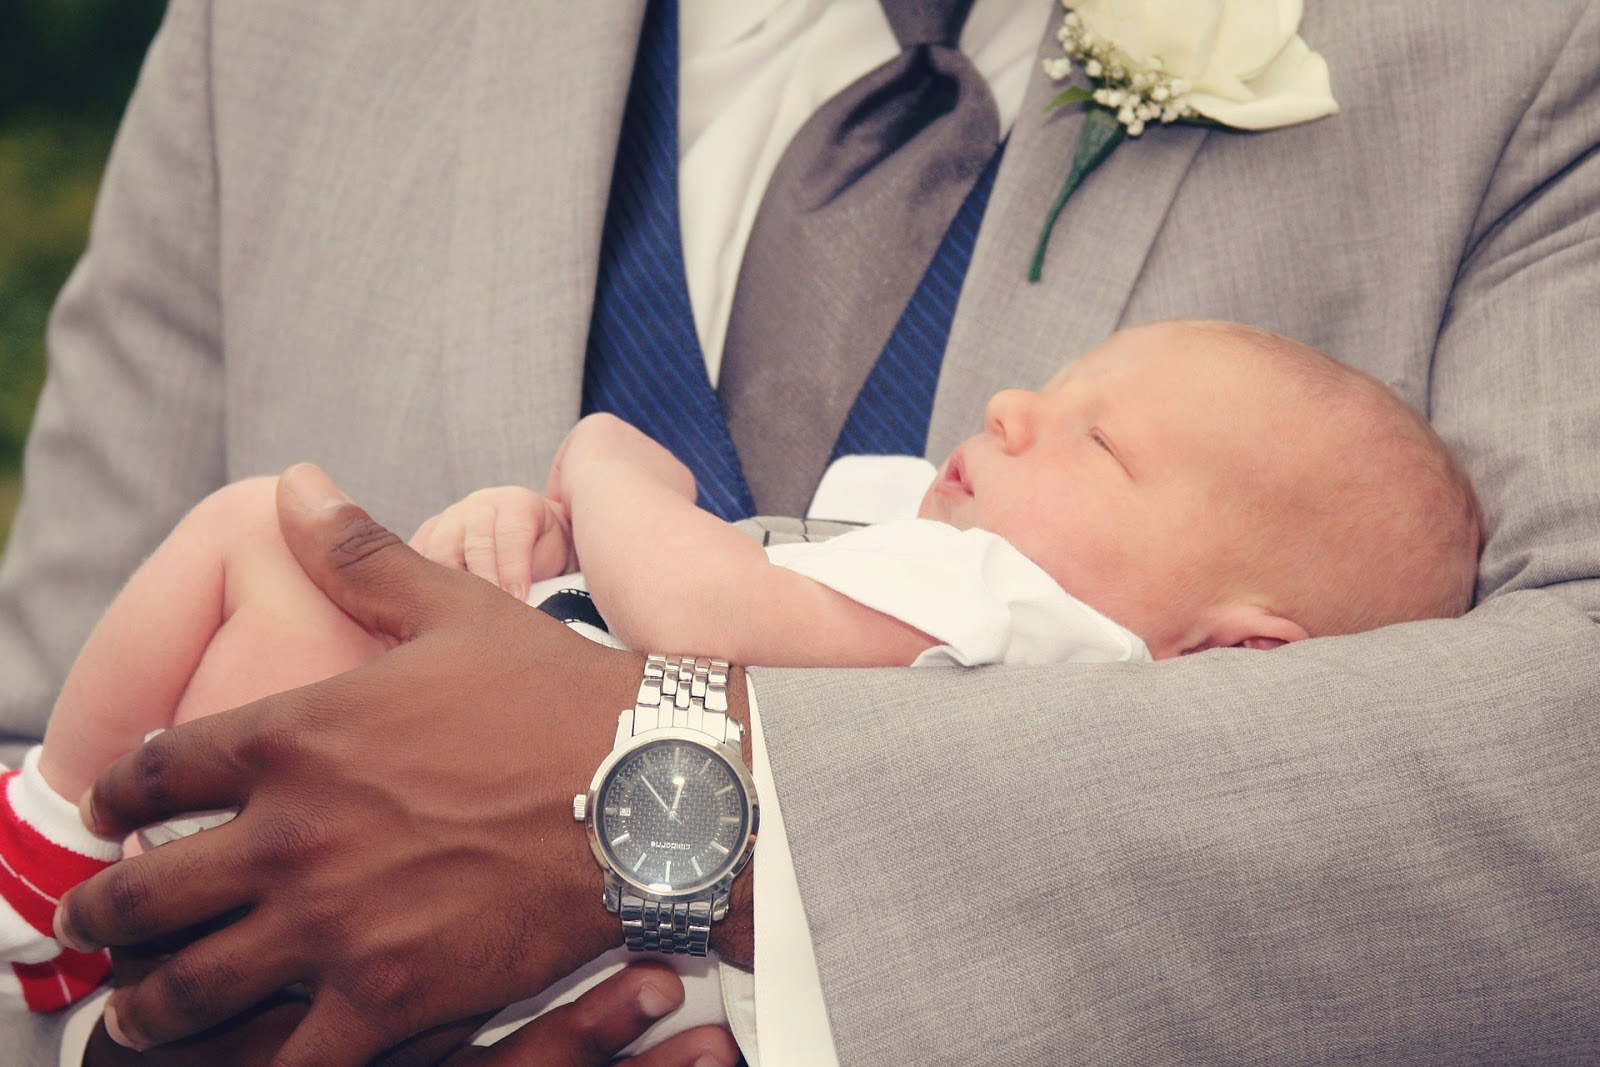 A man in a suit holds a baby